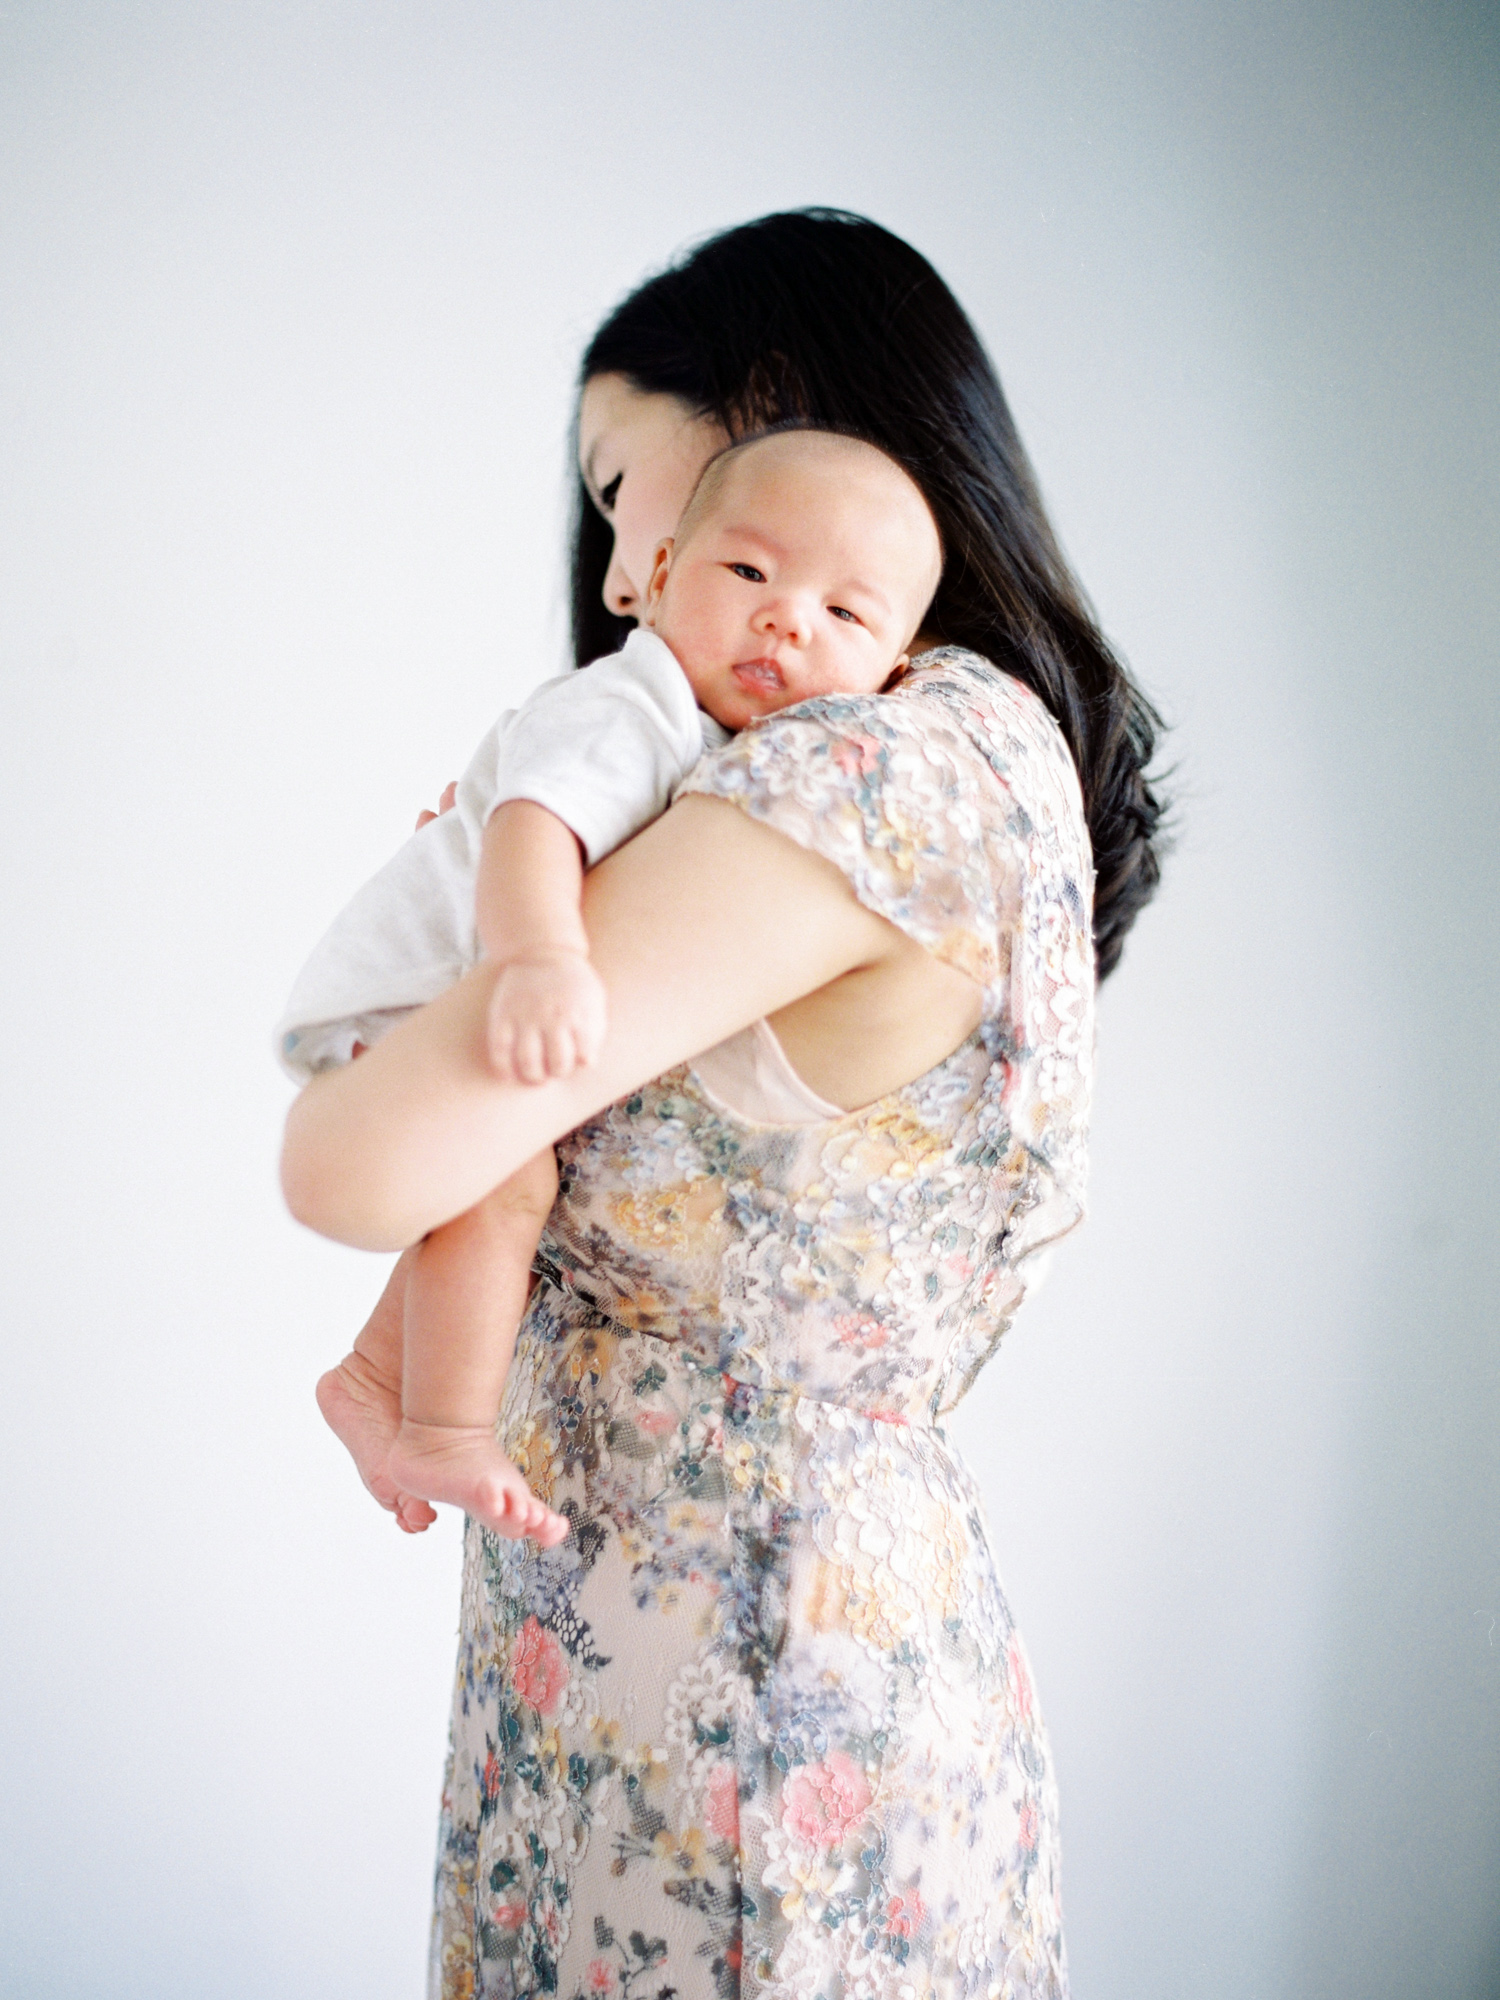 newborn-baby-girl-film photography-styling-jakarta-1.jpg